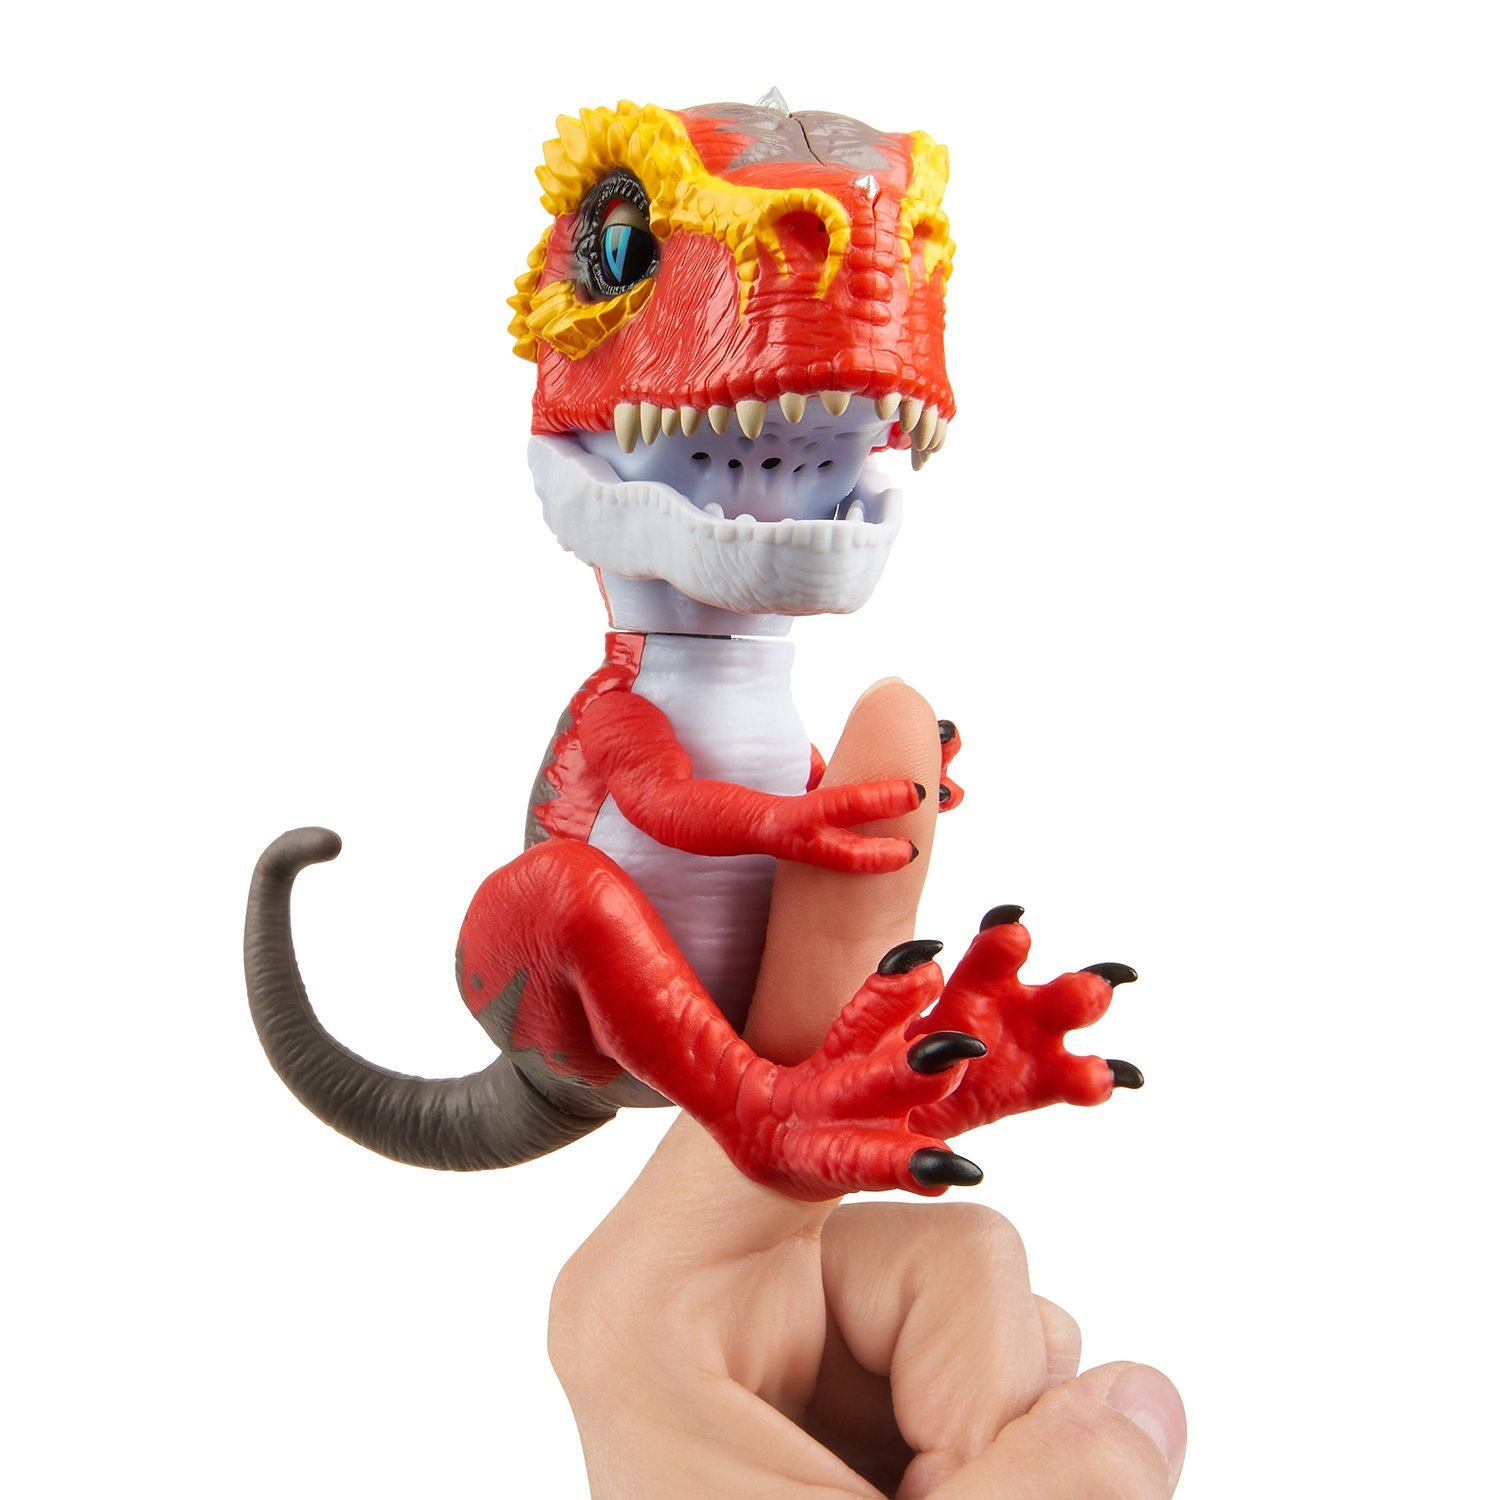 Untamed T-Rex by Fingerlings –Ripsaw (Red) - Interactive Collectible Dinosaur - By WowWee